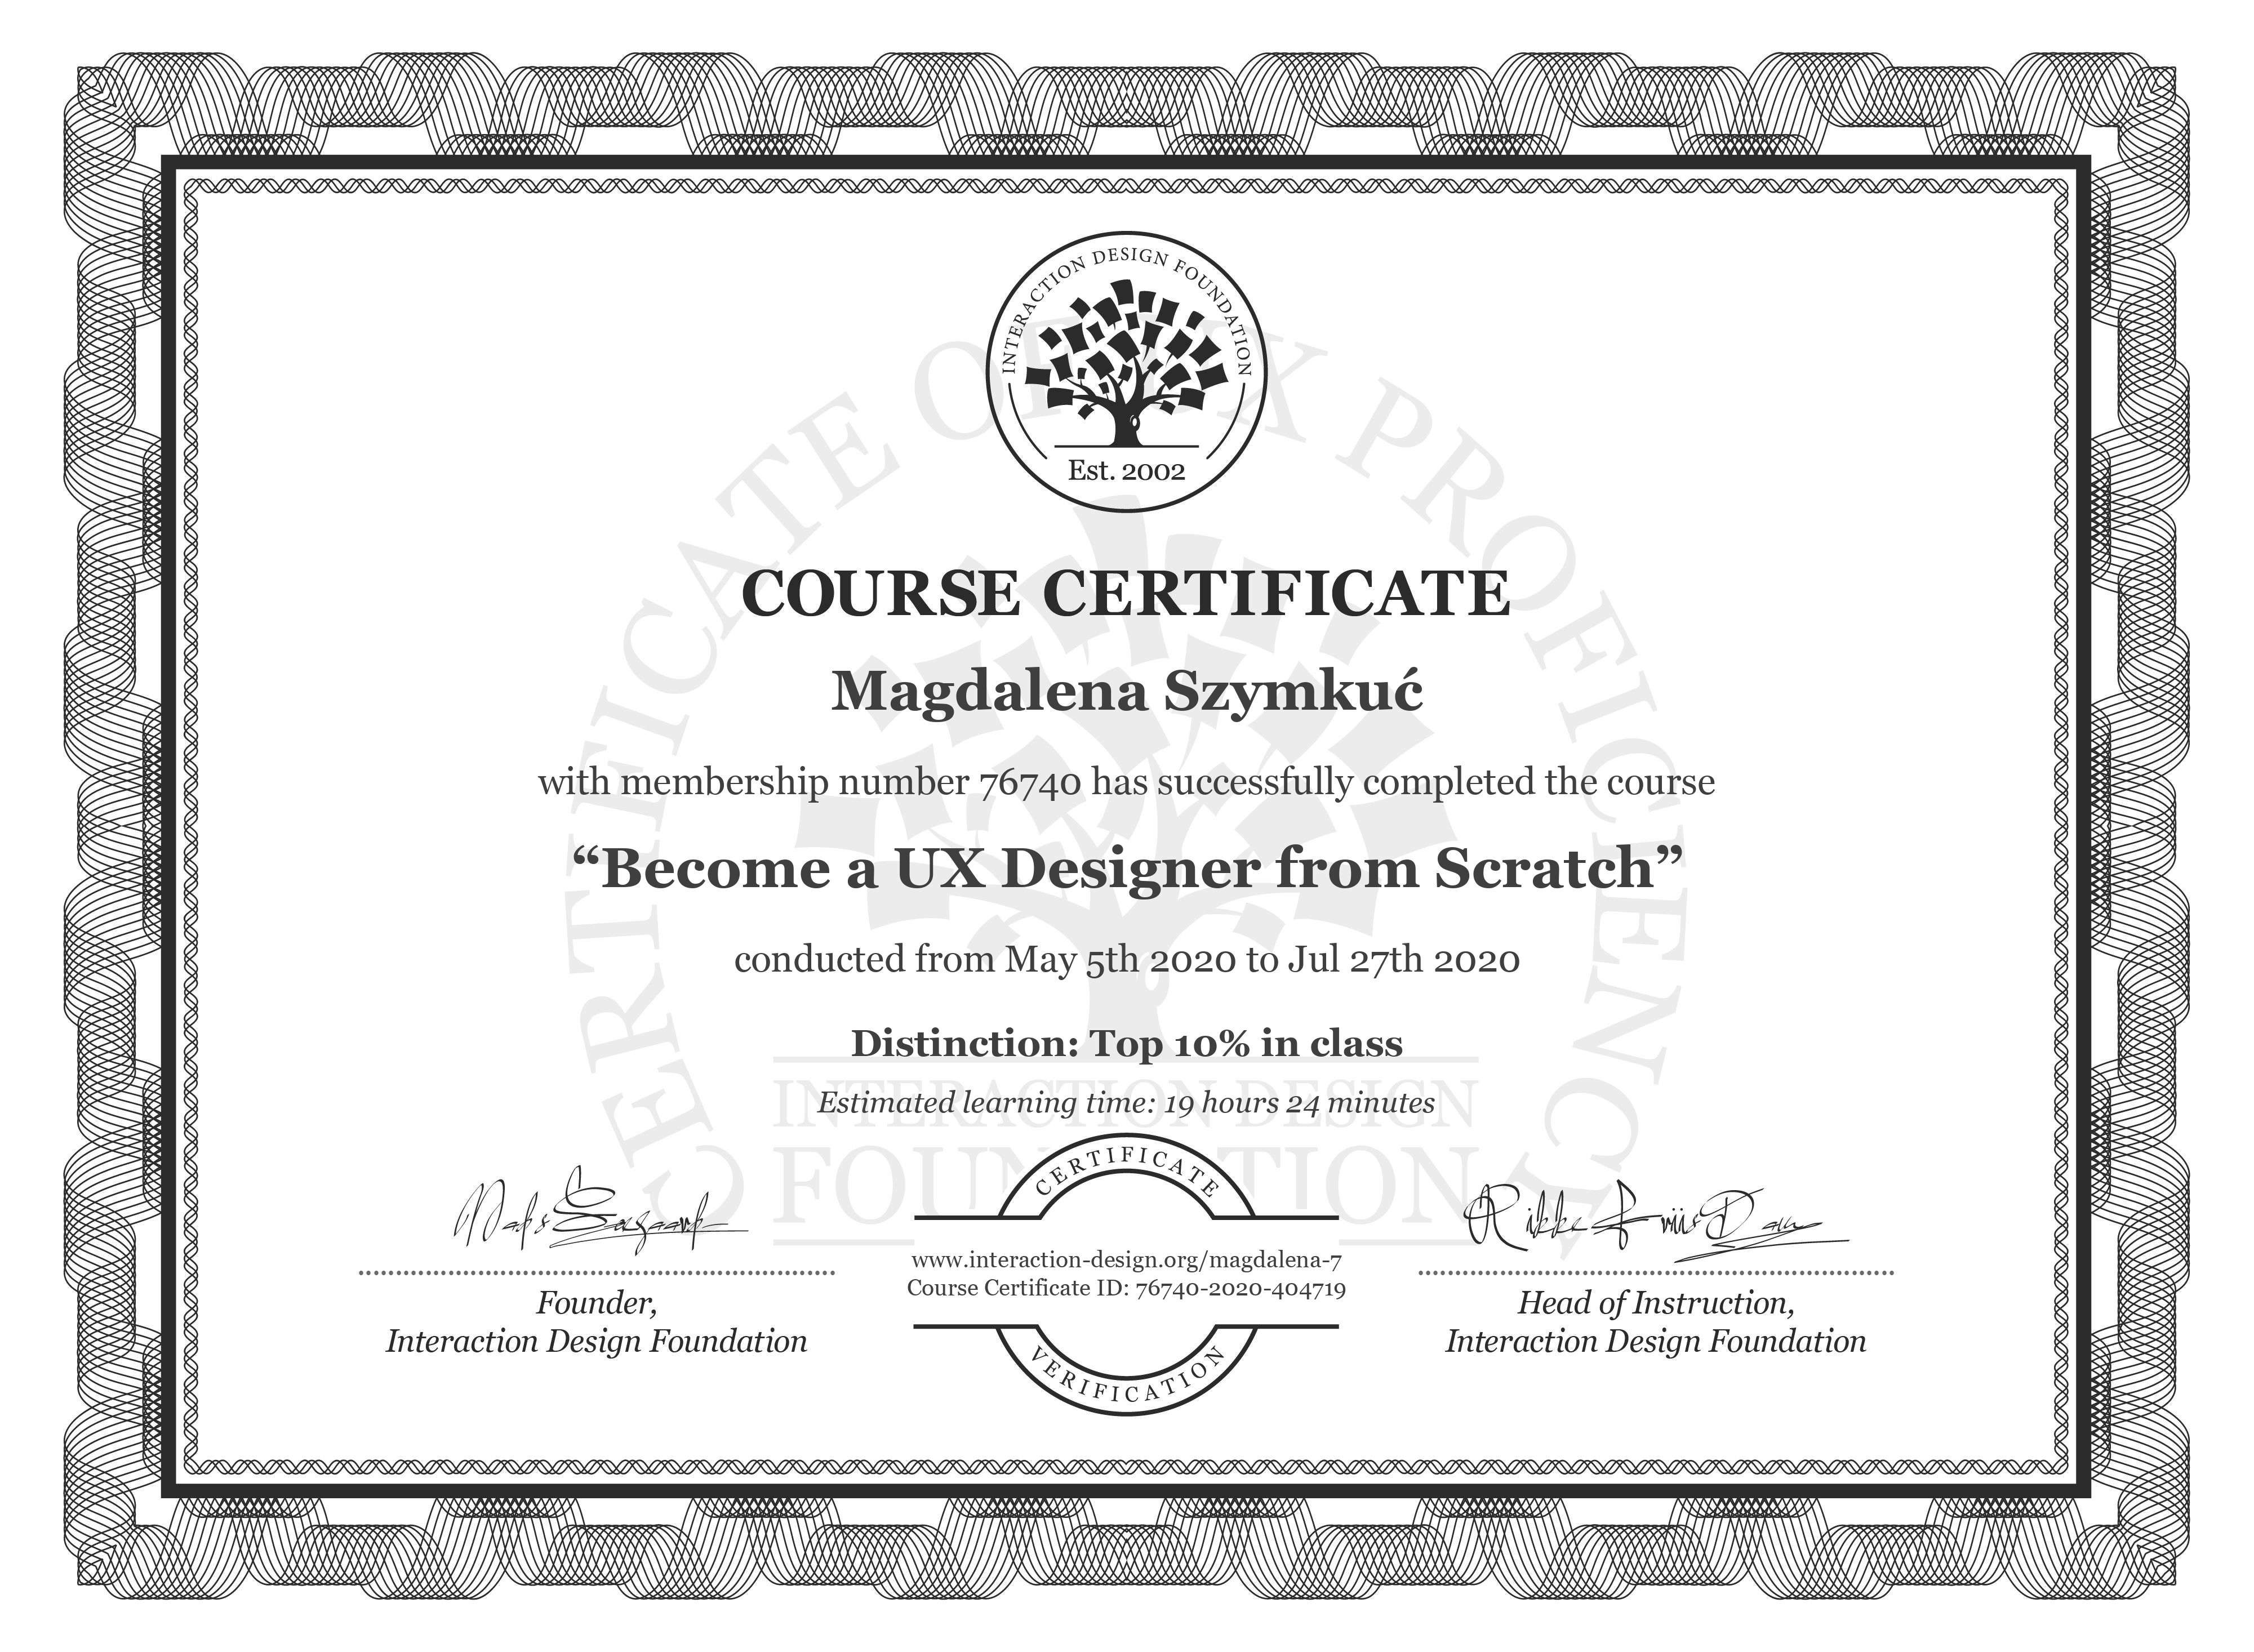 Magdalena Szymkuć's Course Certificate: User Experience: The Beginner's Guide